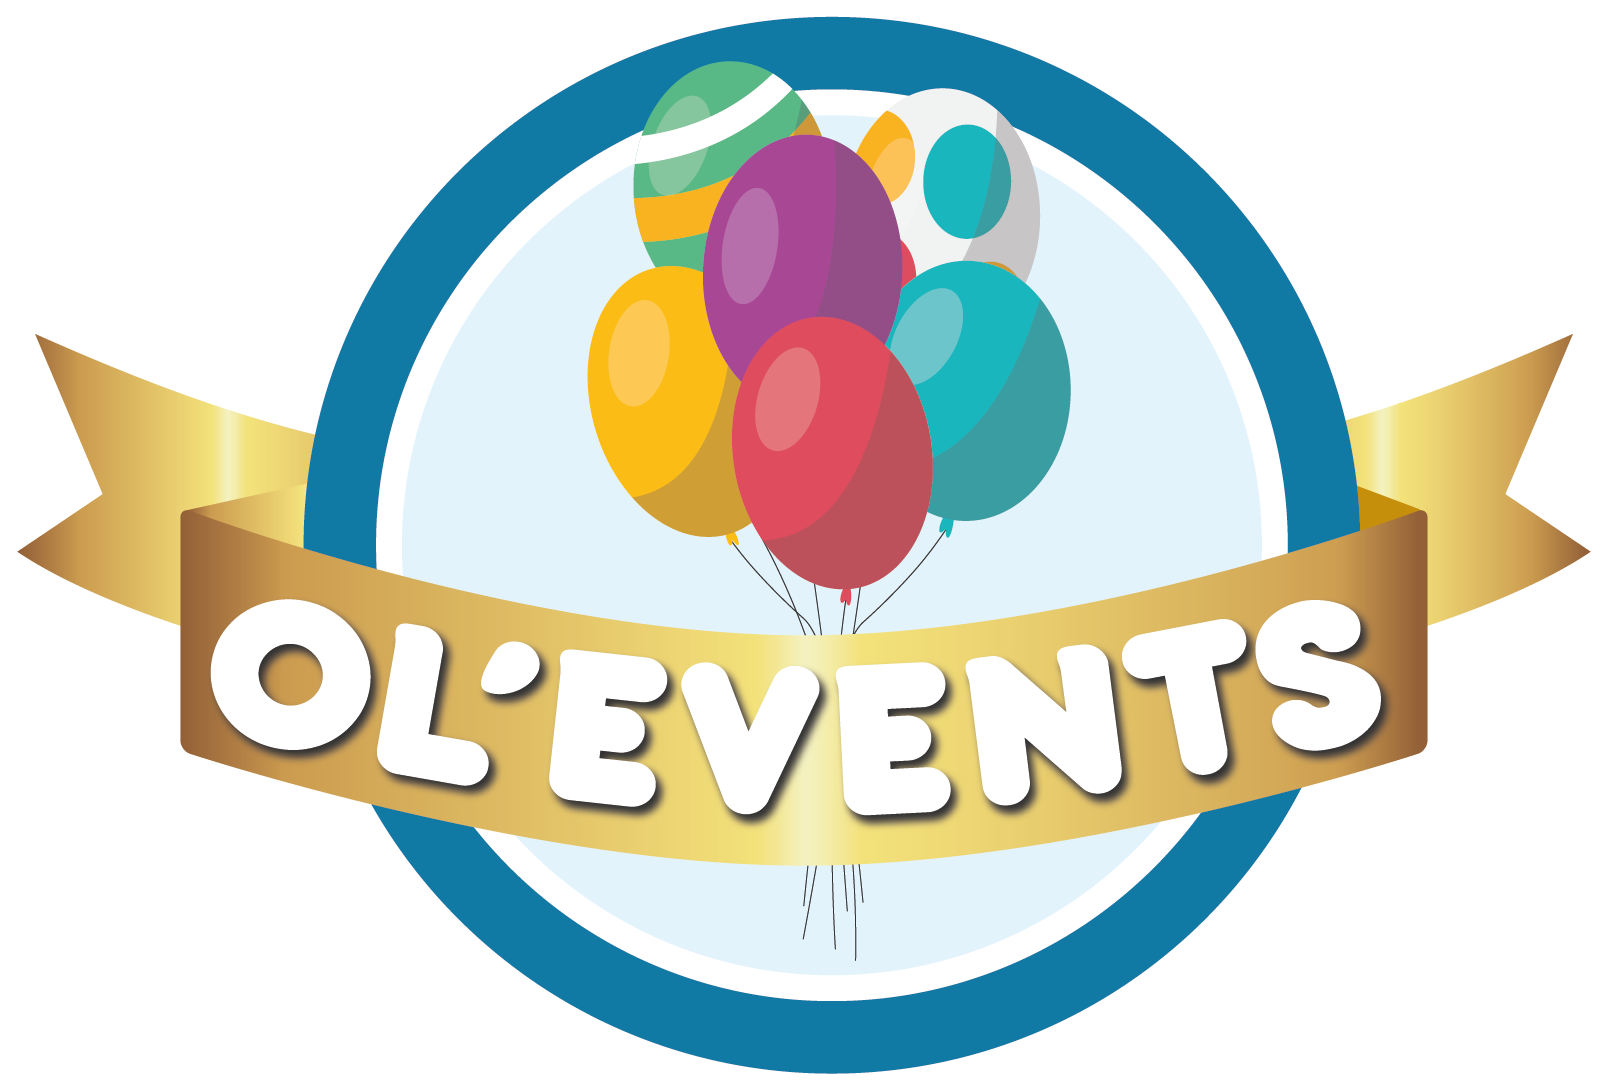 Logo OL'EVENTS décoration ballon